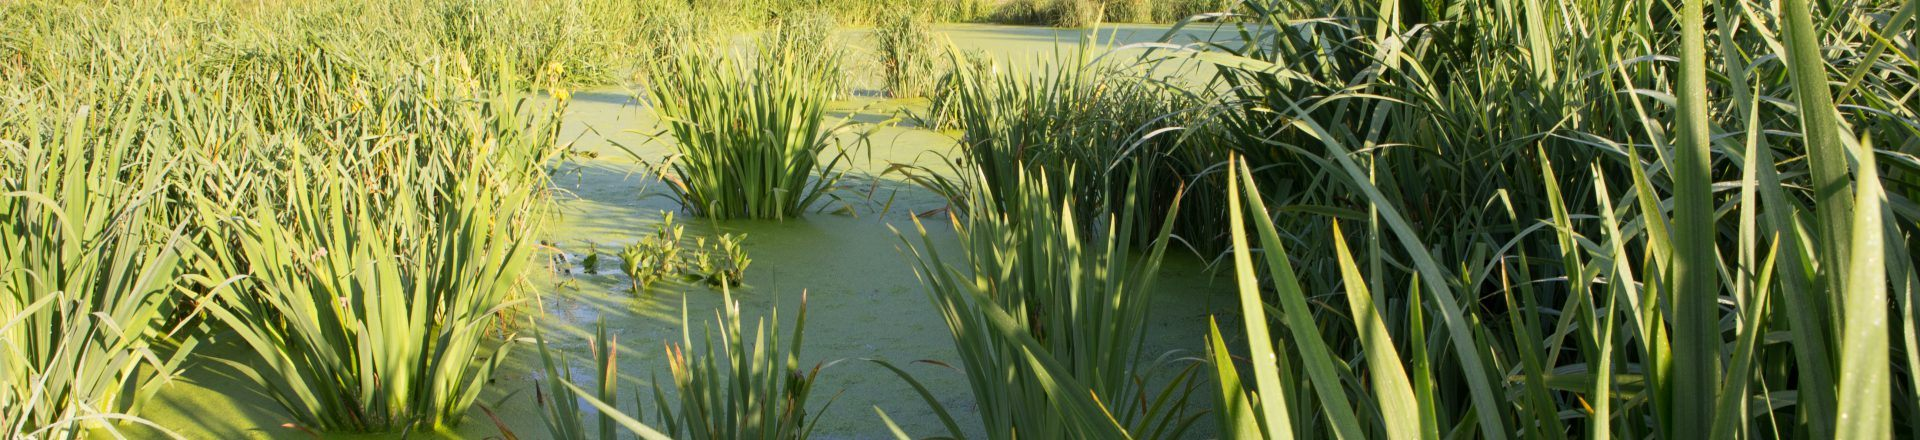 Frogshall wetland in Norfolk – a silent hero?